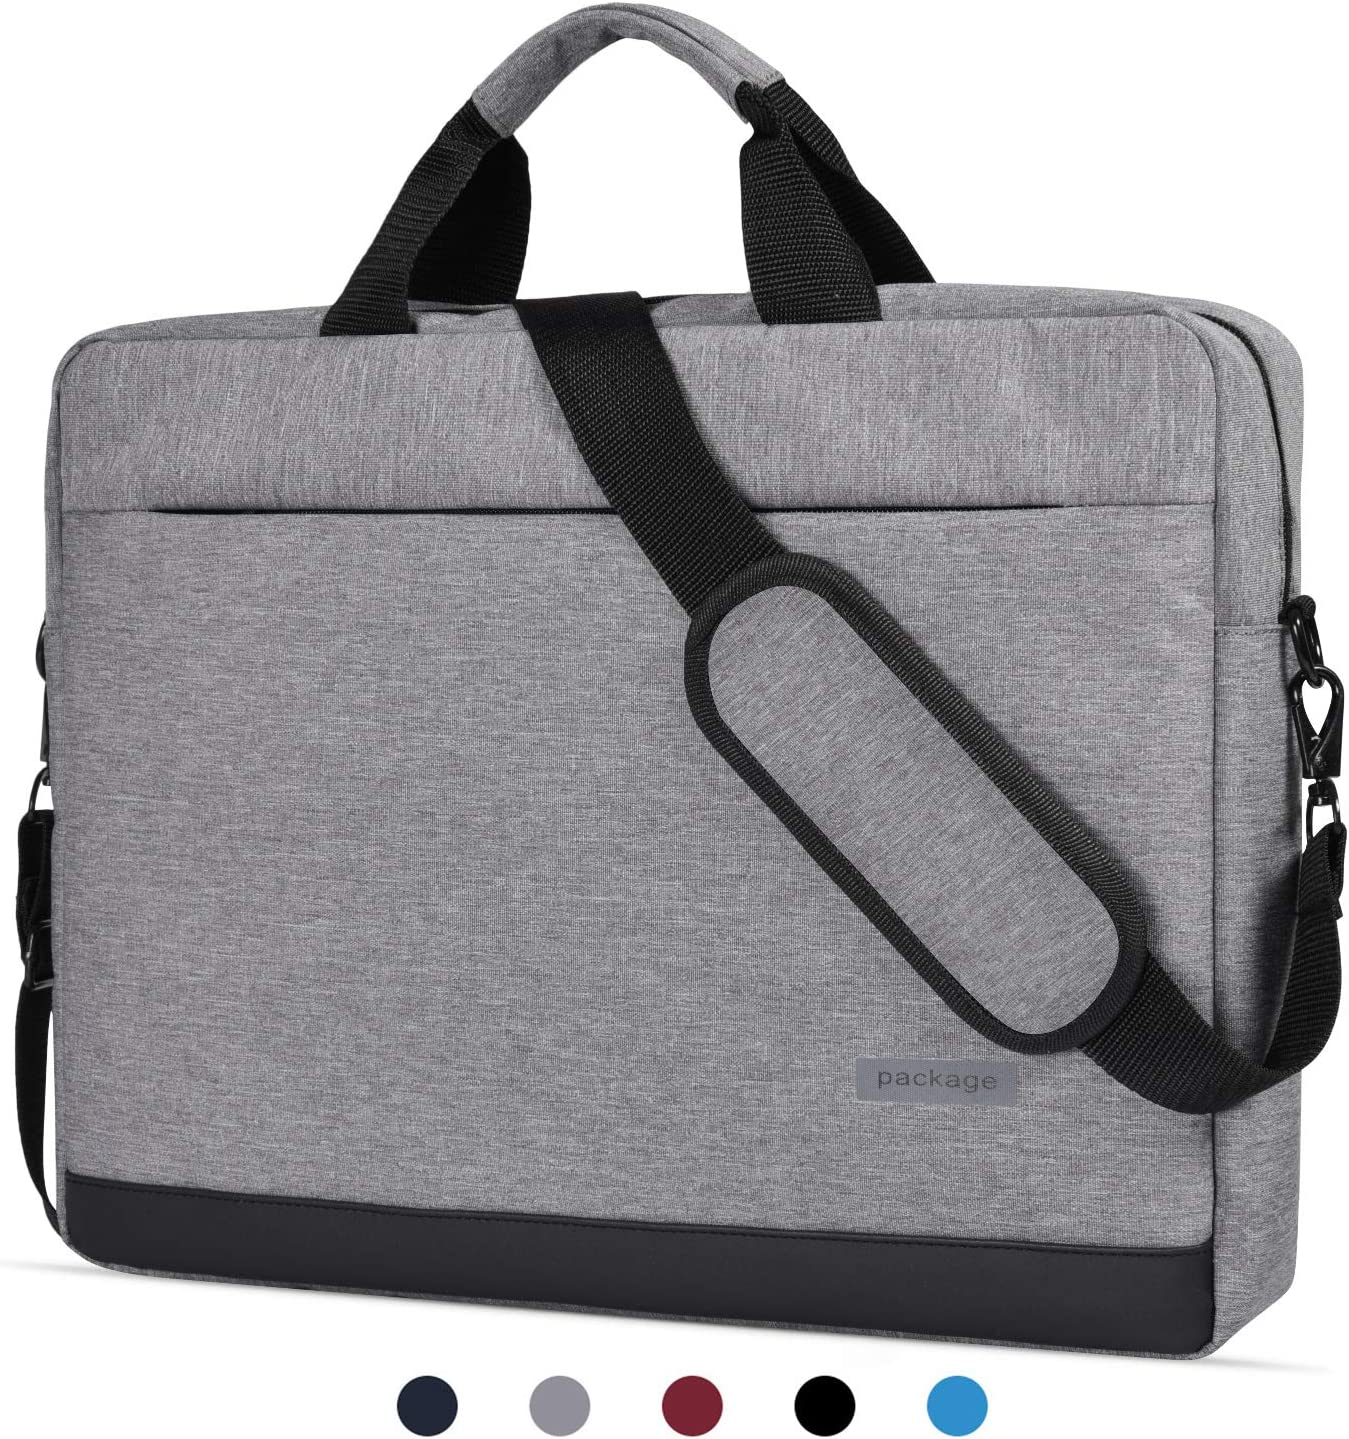 "14-15 Inch Laptop Tablet Sleeve Case Notebook Shoulder Bag for HP Stream 14/HP 14"" Laptop,Acer Chromebook 14/Acer Spin 3,Lenovo Flex 14/Lenovo Chromebook S330 14,LG Gram 14,ASUS DELL Lenovo Laptop Bag"